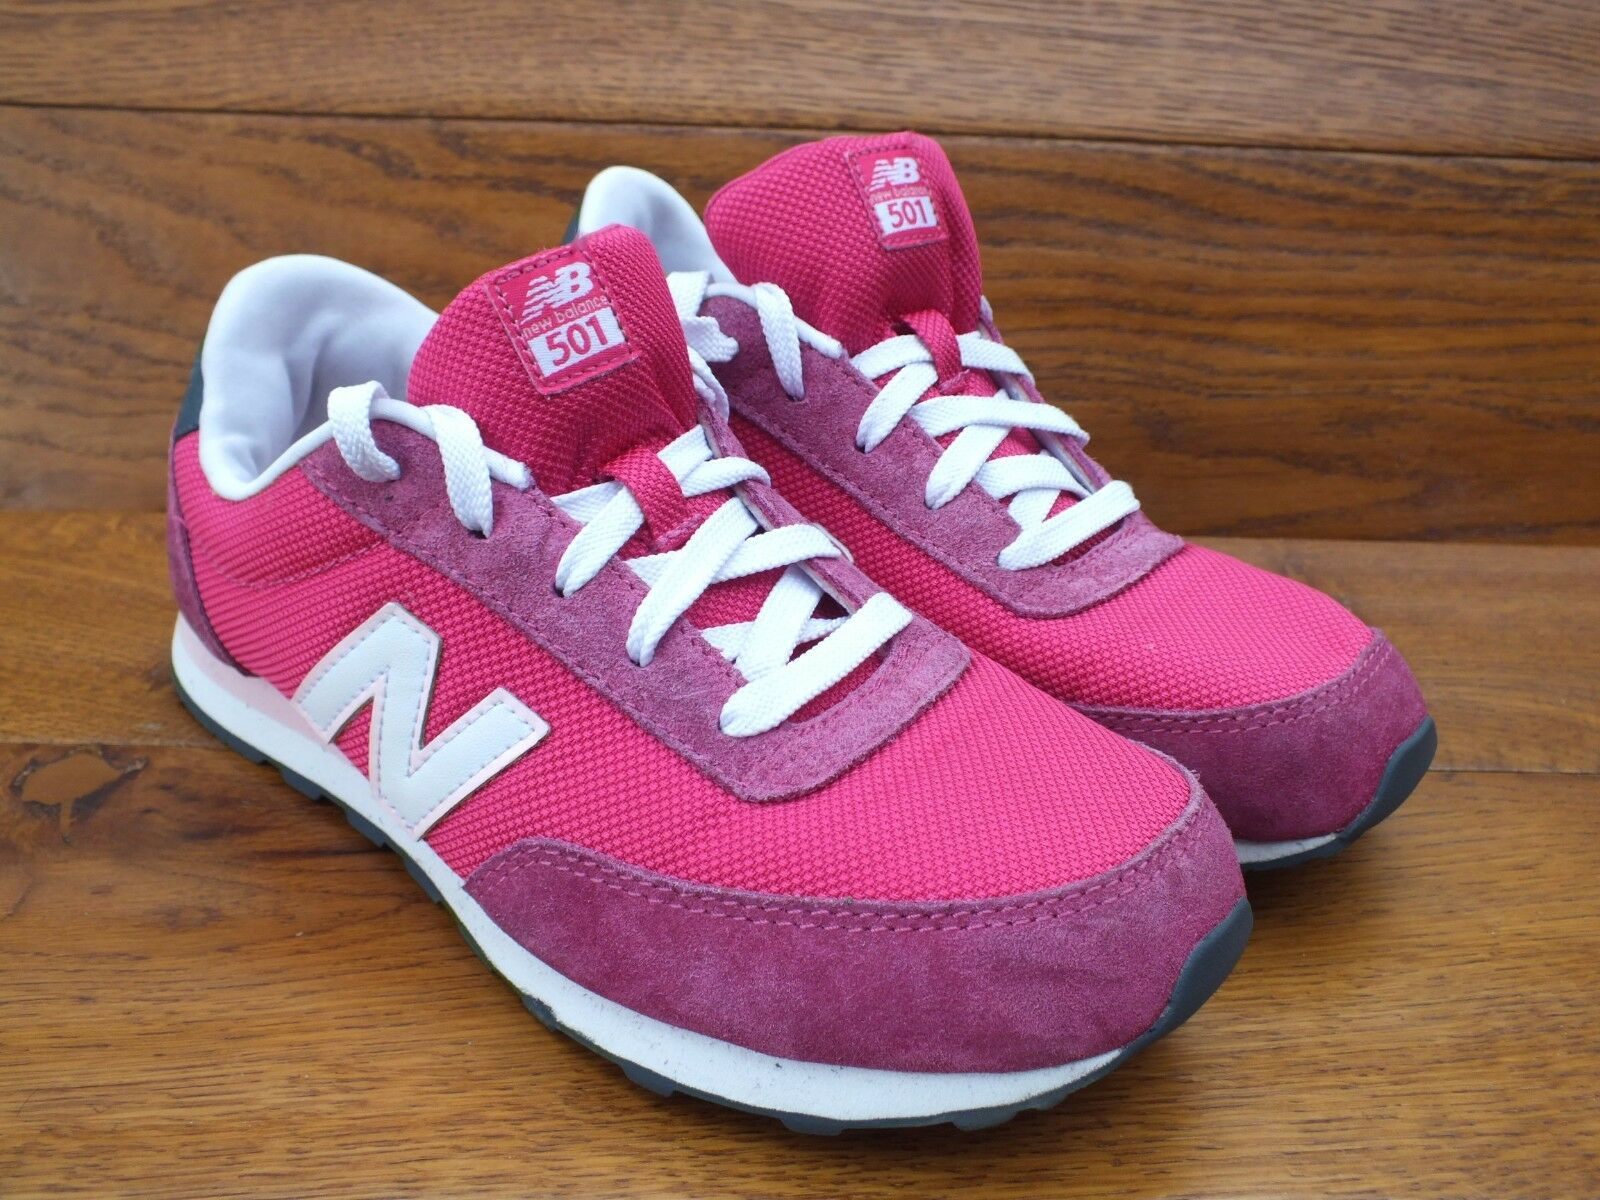 New Balance 501 Pink Casual Trainers Size